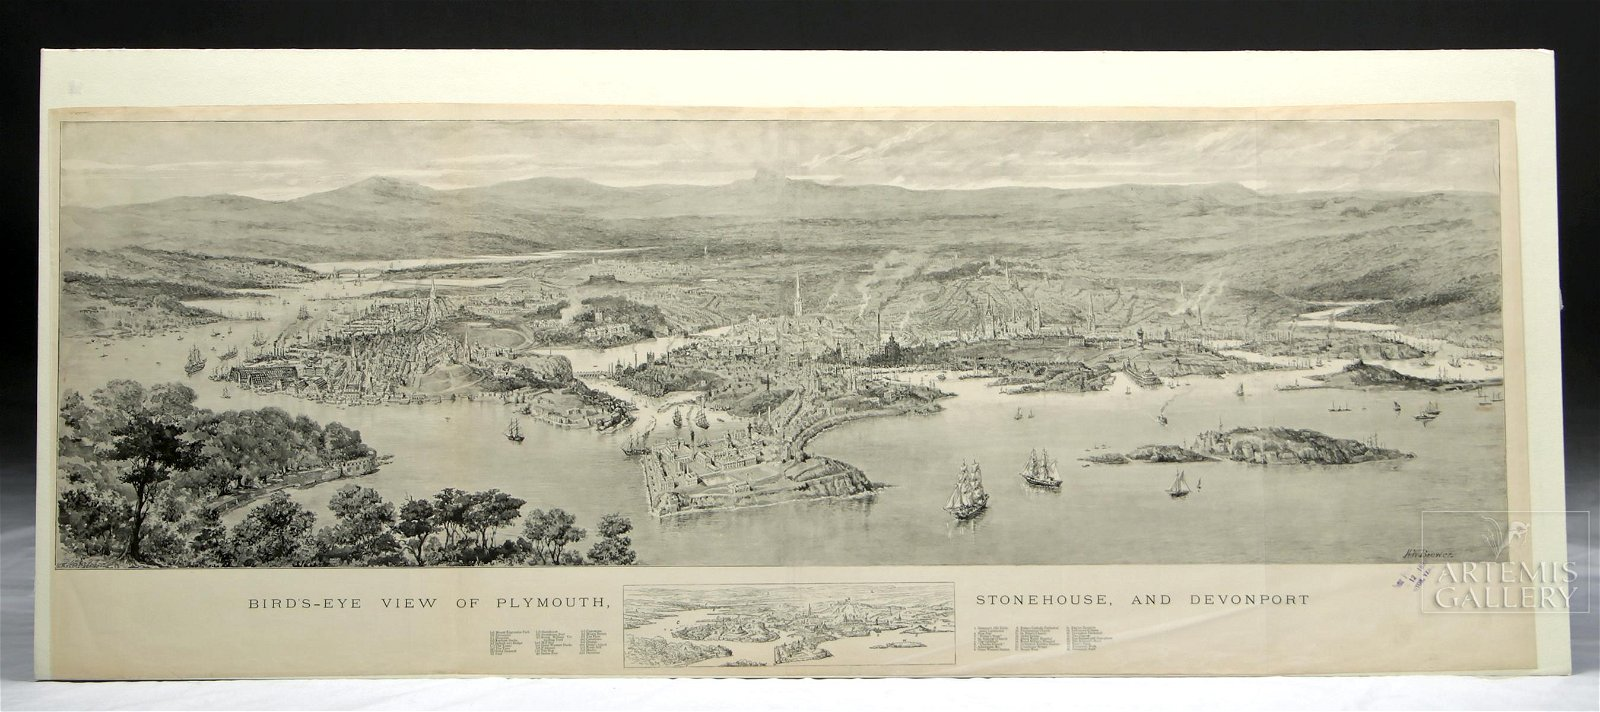 H.W. Brewer Bird's Eye View of Plymouth - 1890s